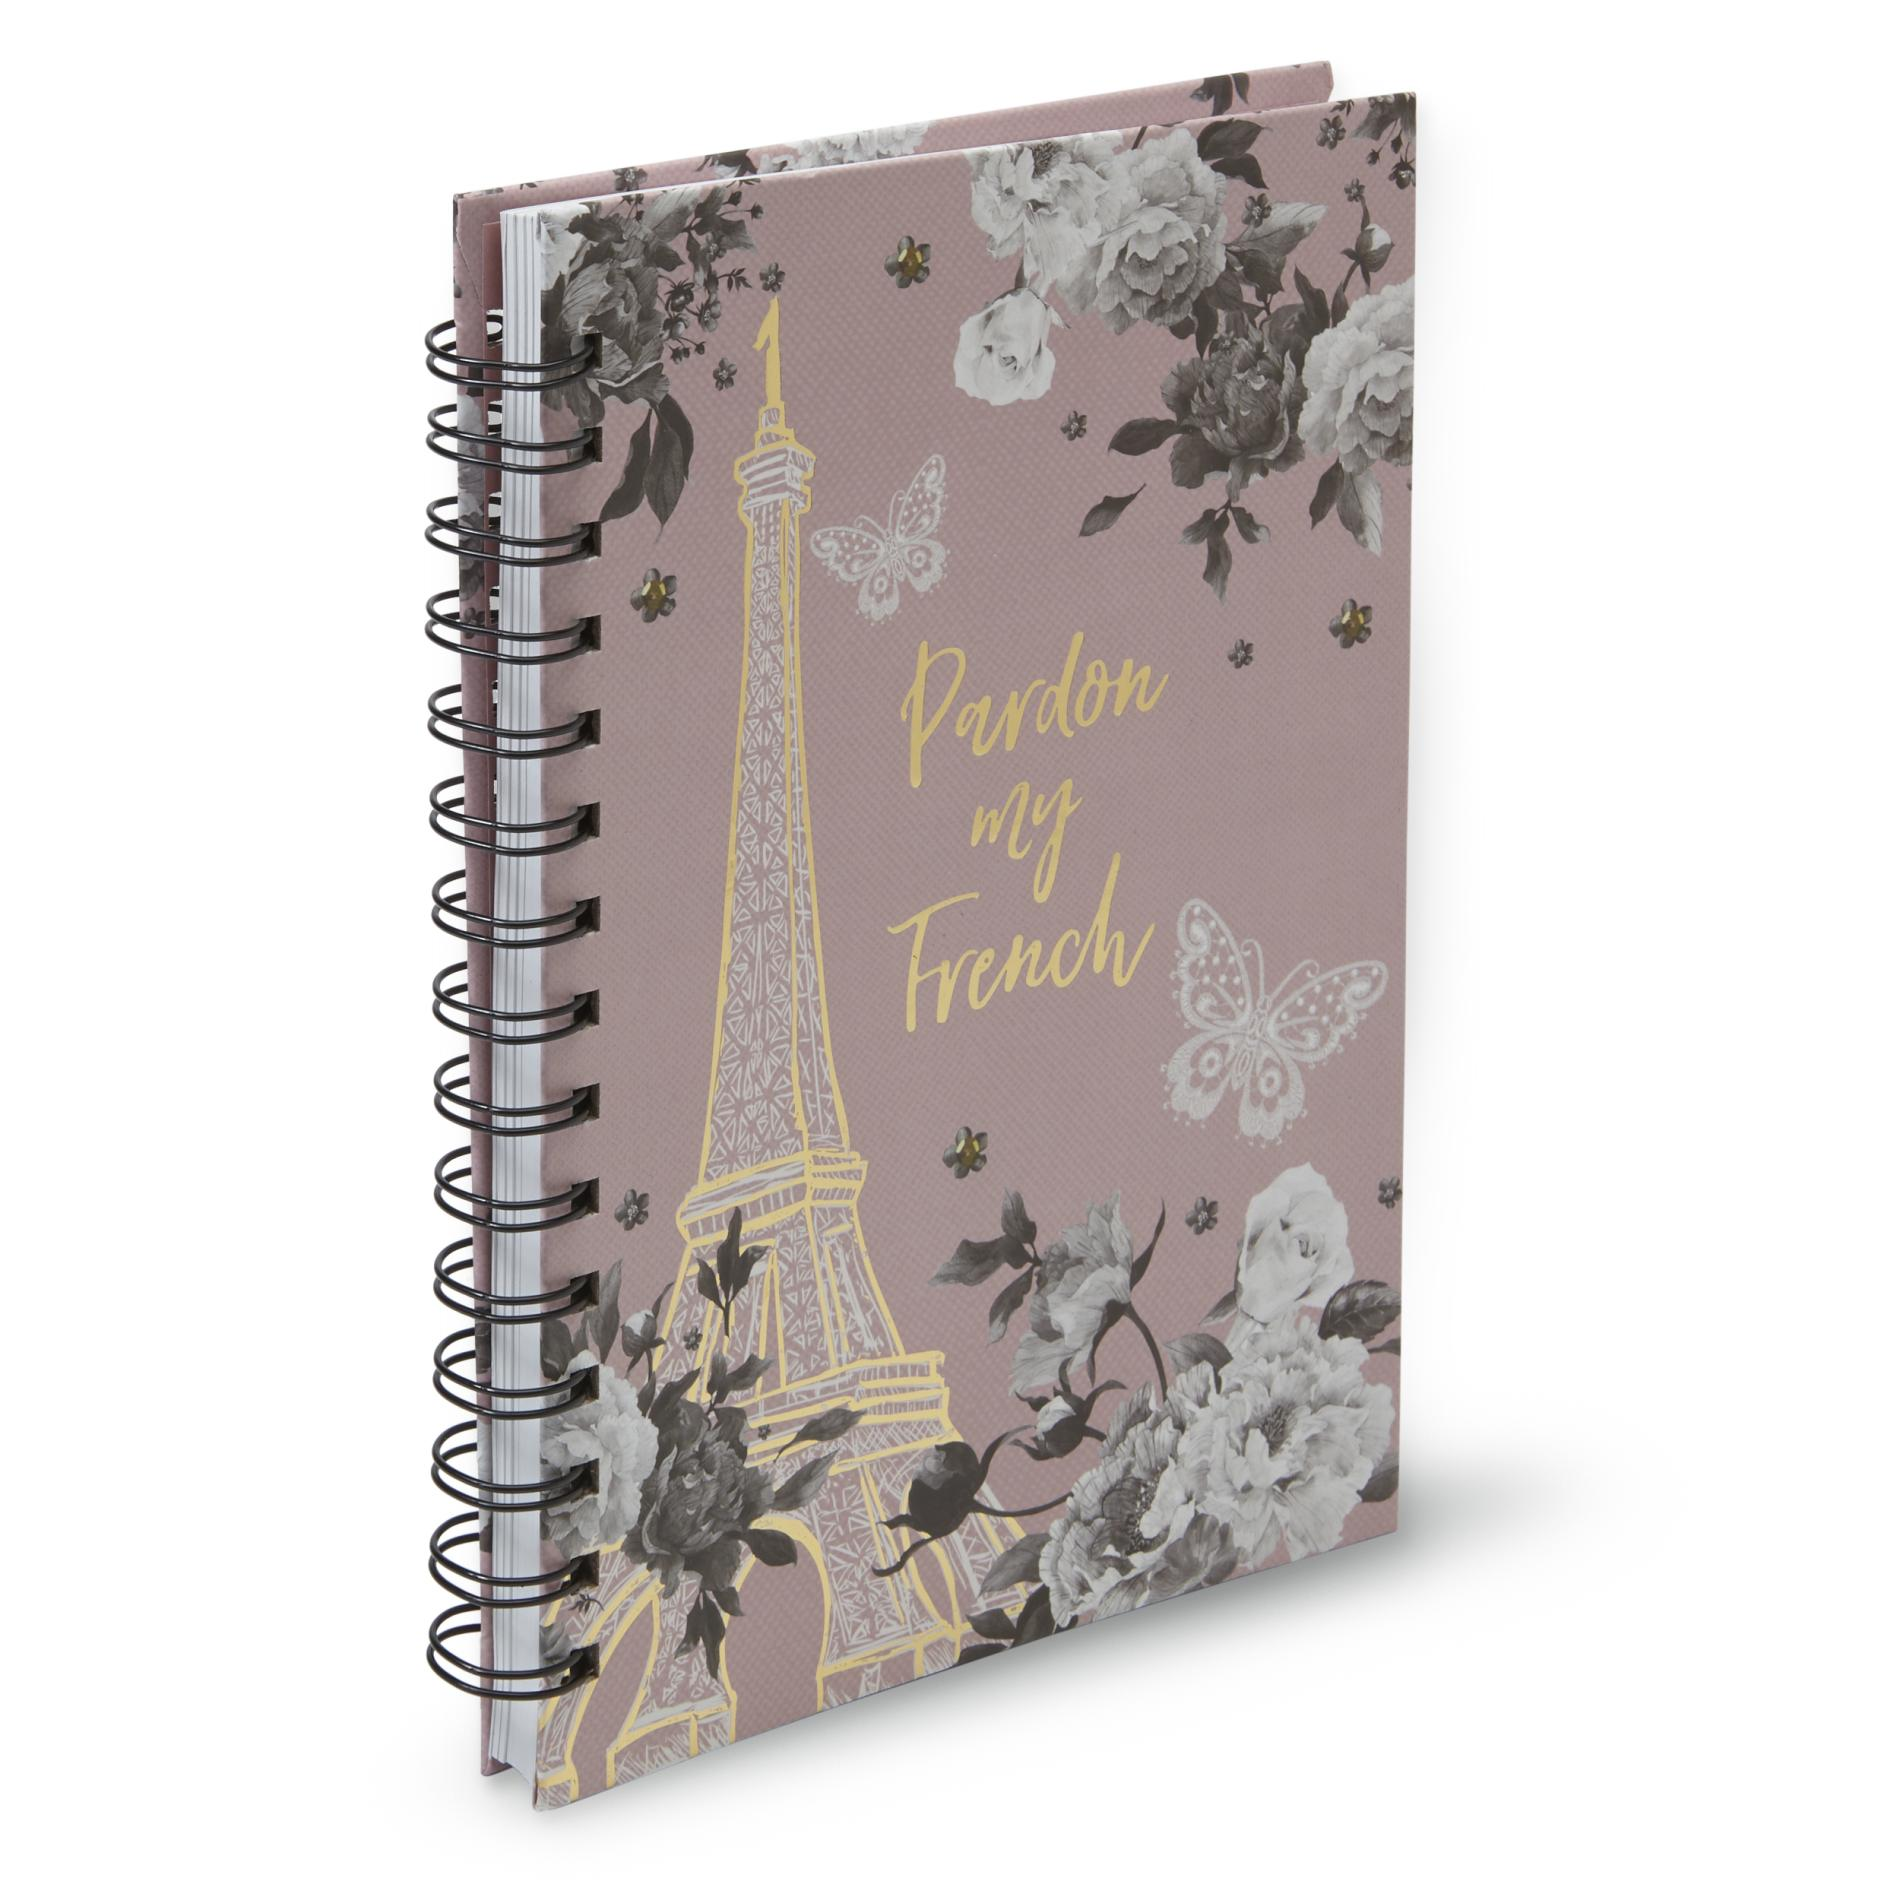 Image of 005T-69525 Spiral Notebook - Pardon My French, Multi Color